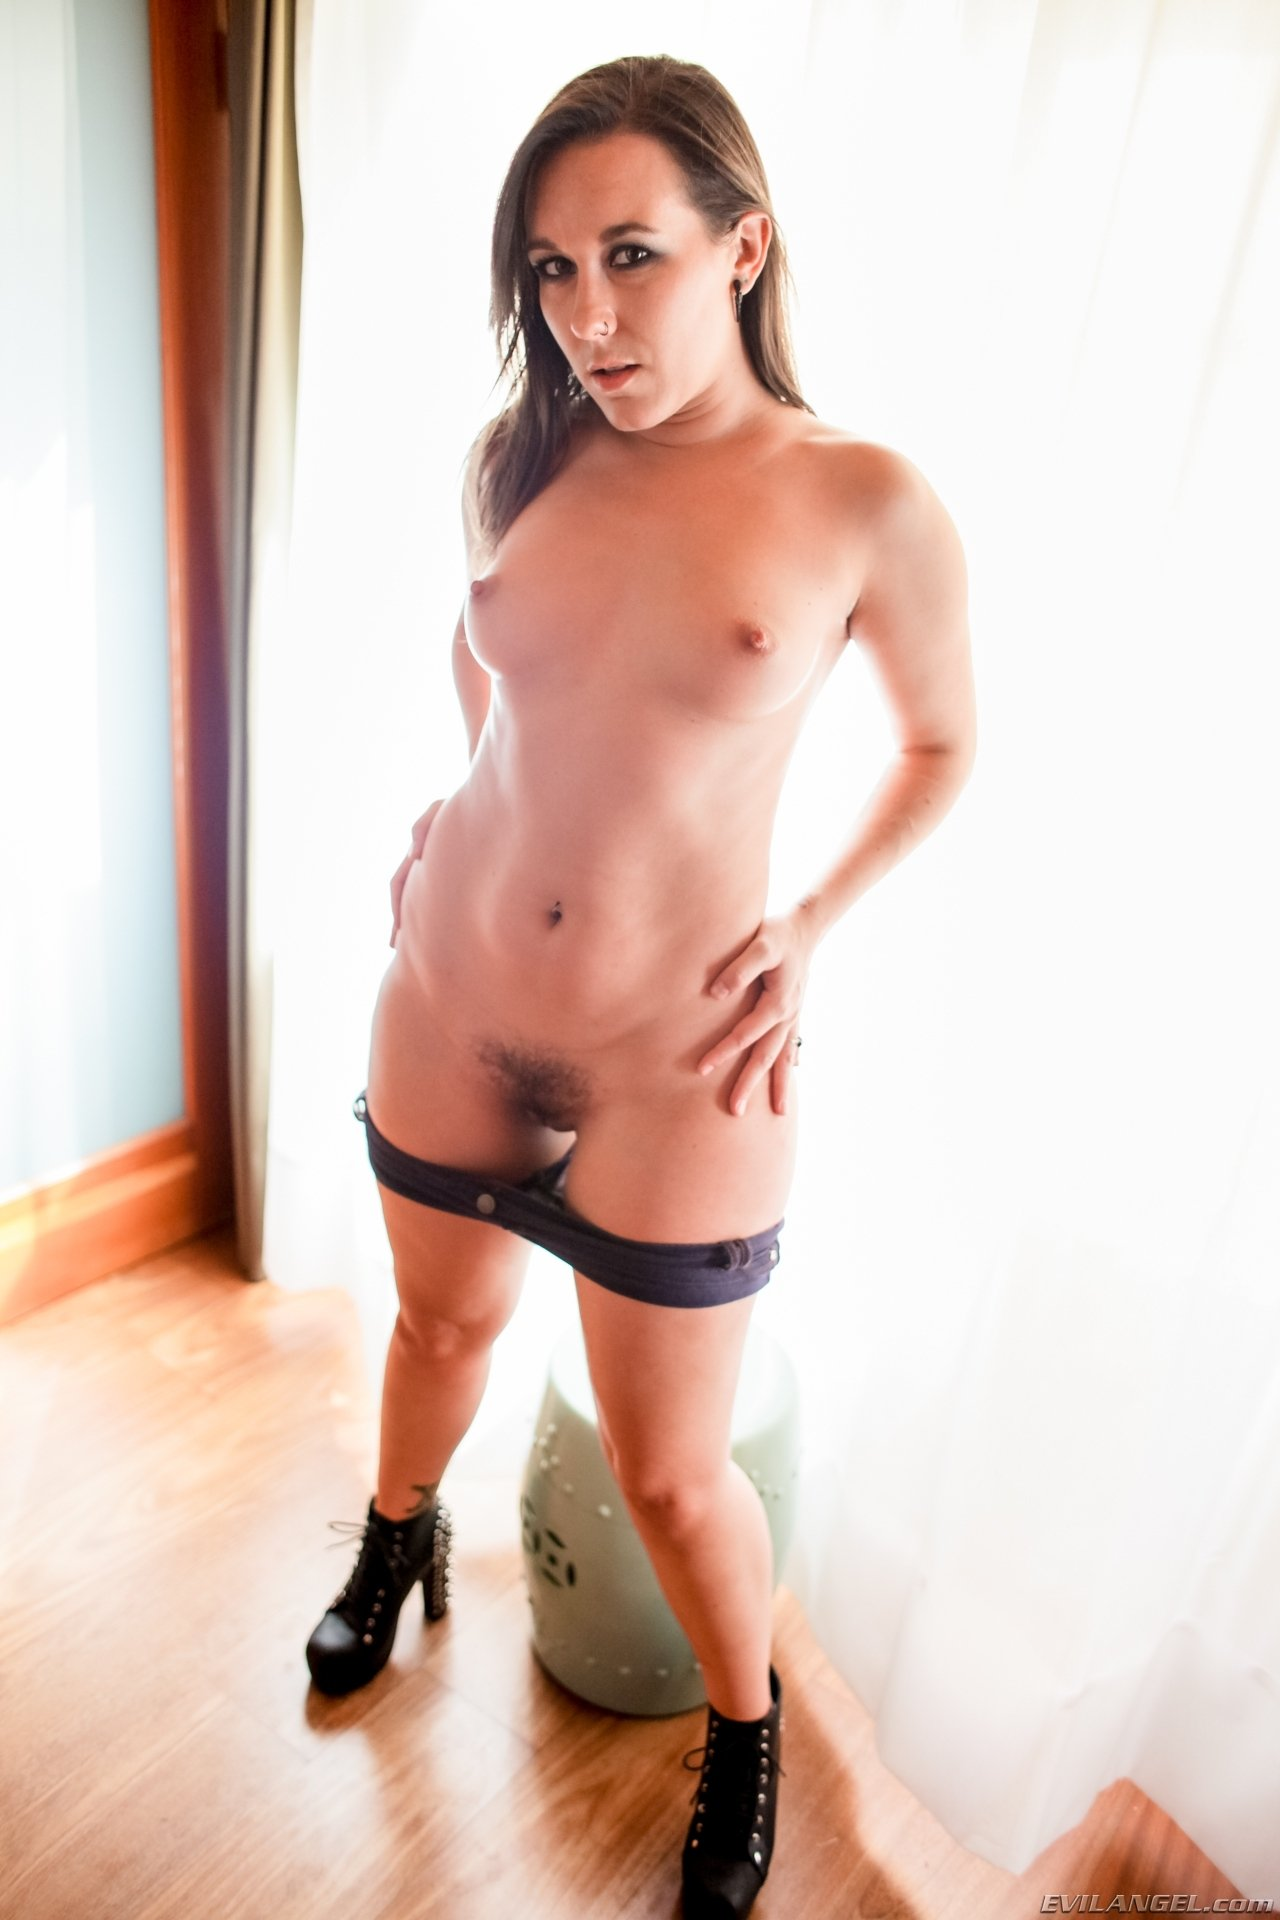 Home nudist questions Lady sonia the trophy wife